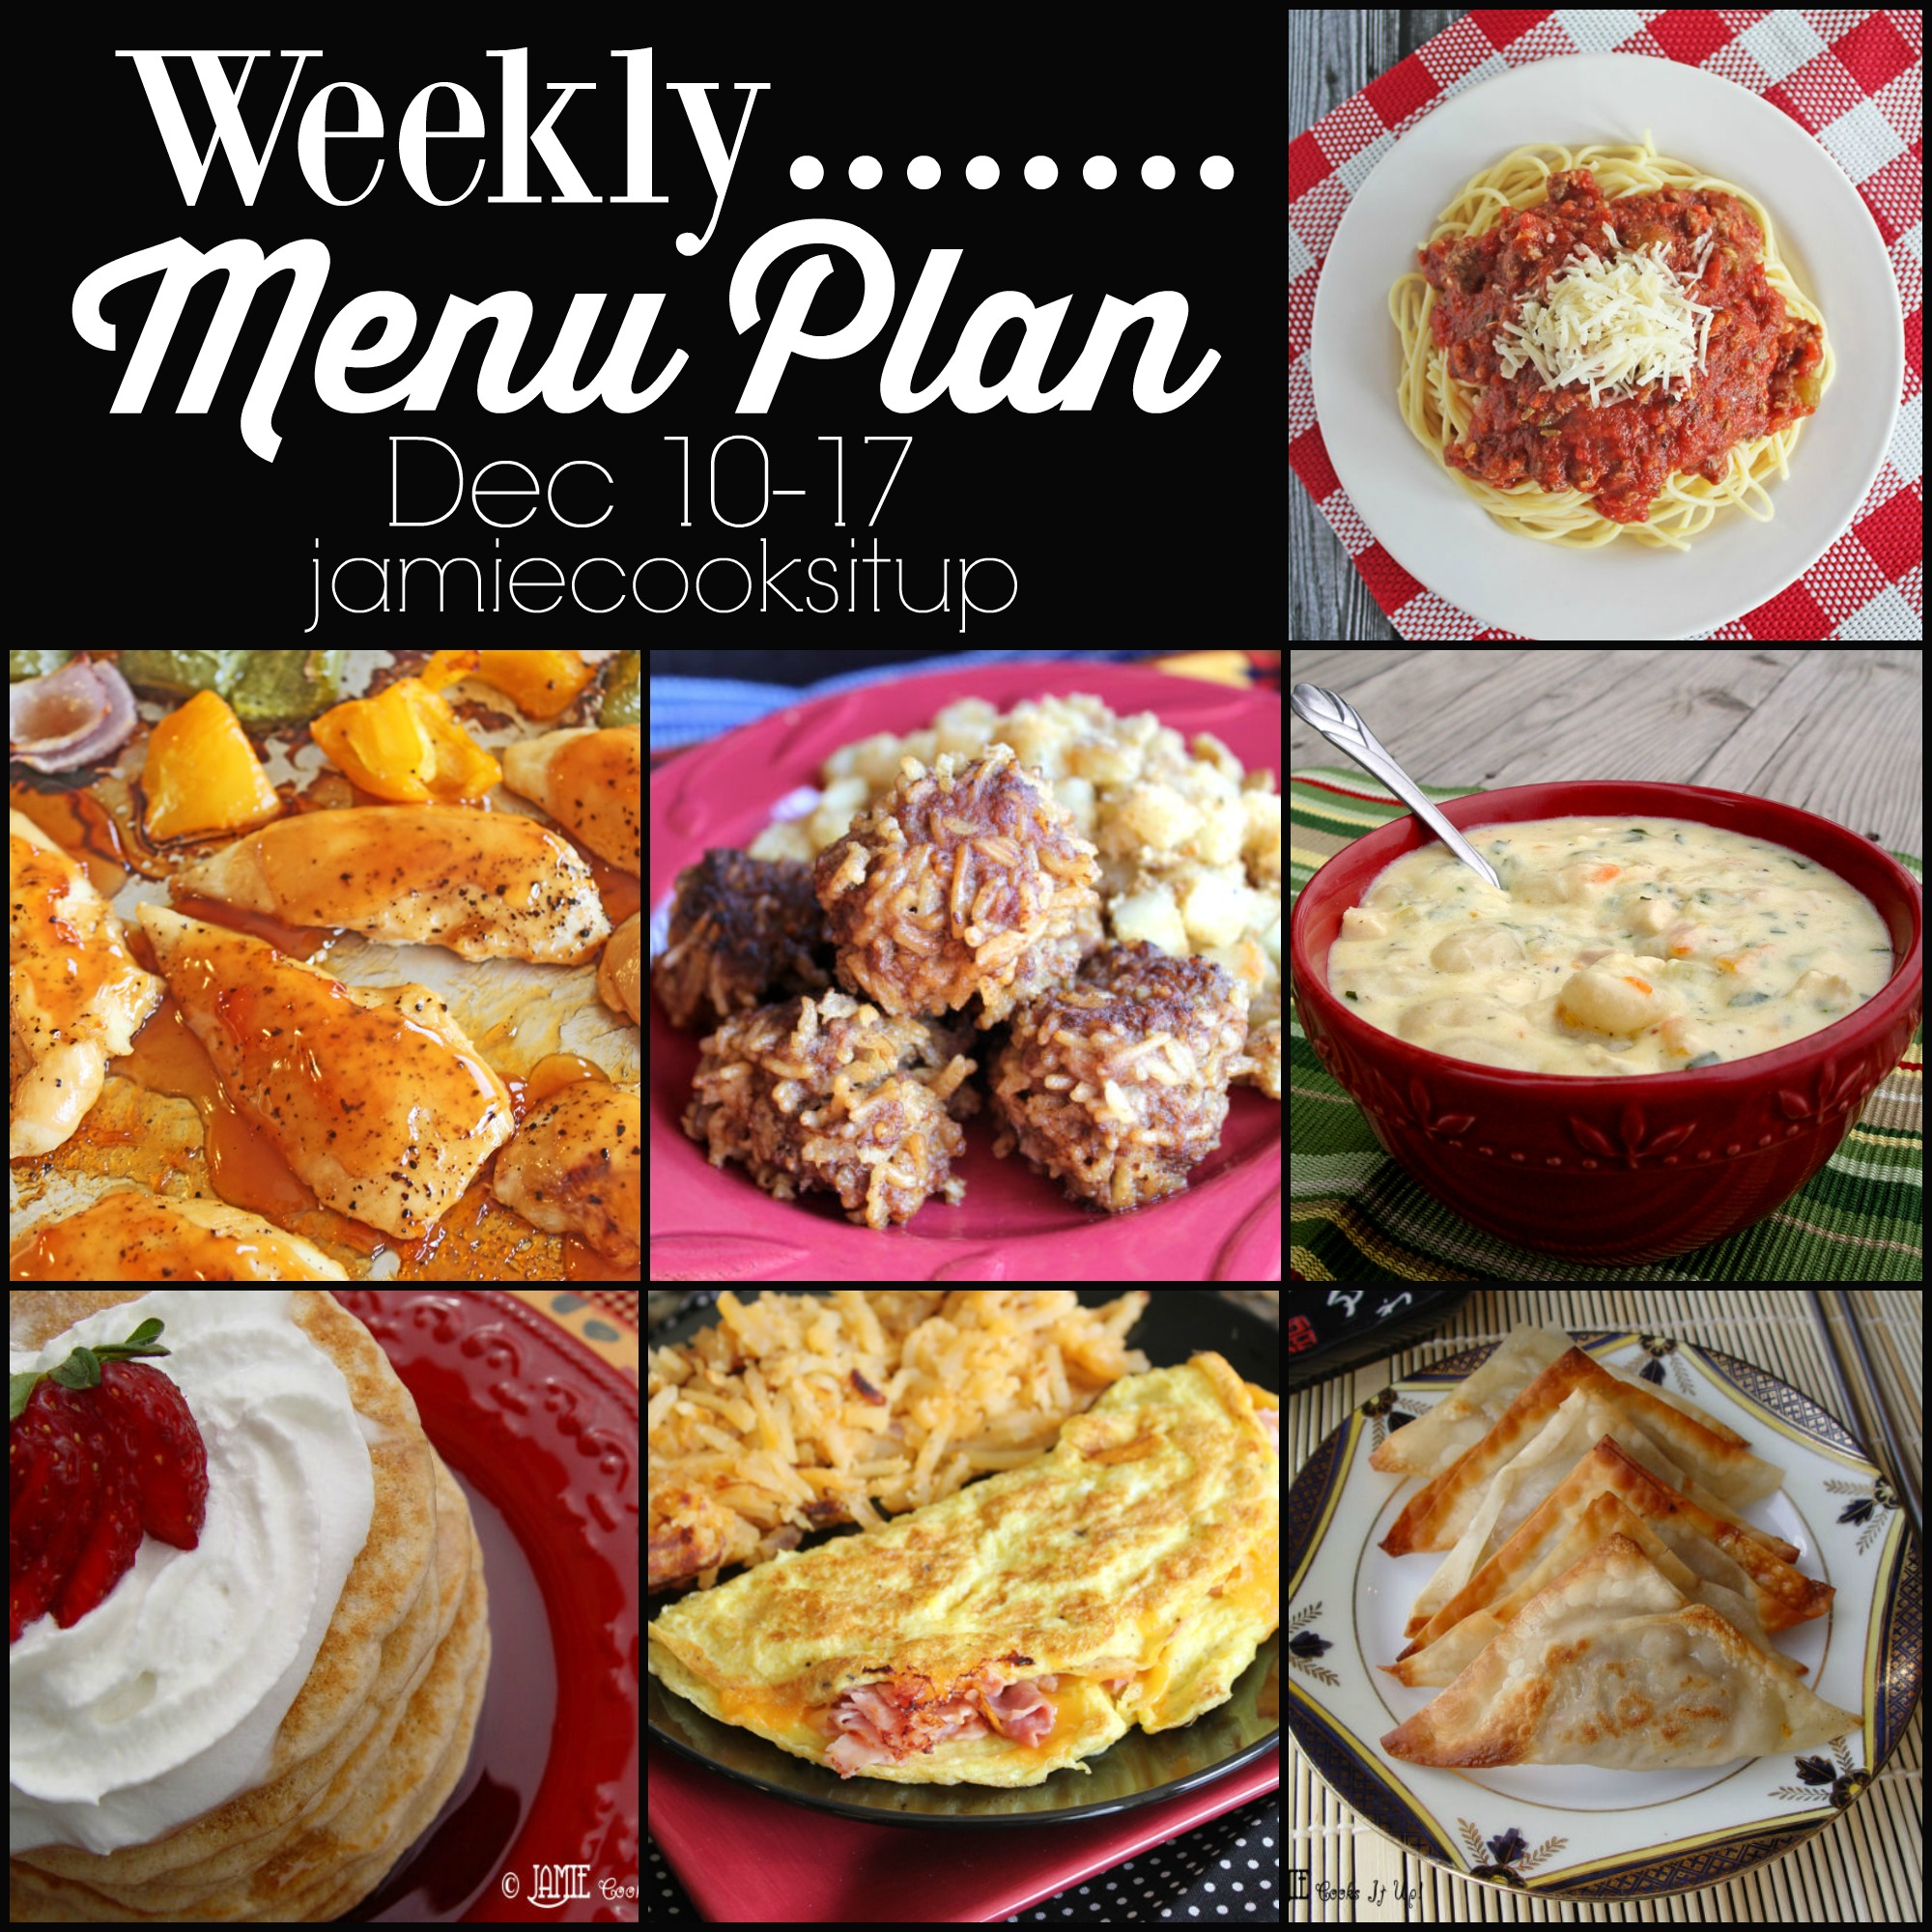 Weekly Menu Plan, Dec 10-17